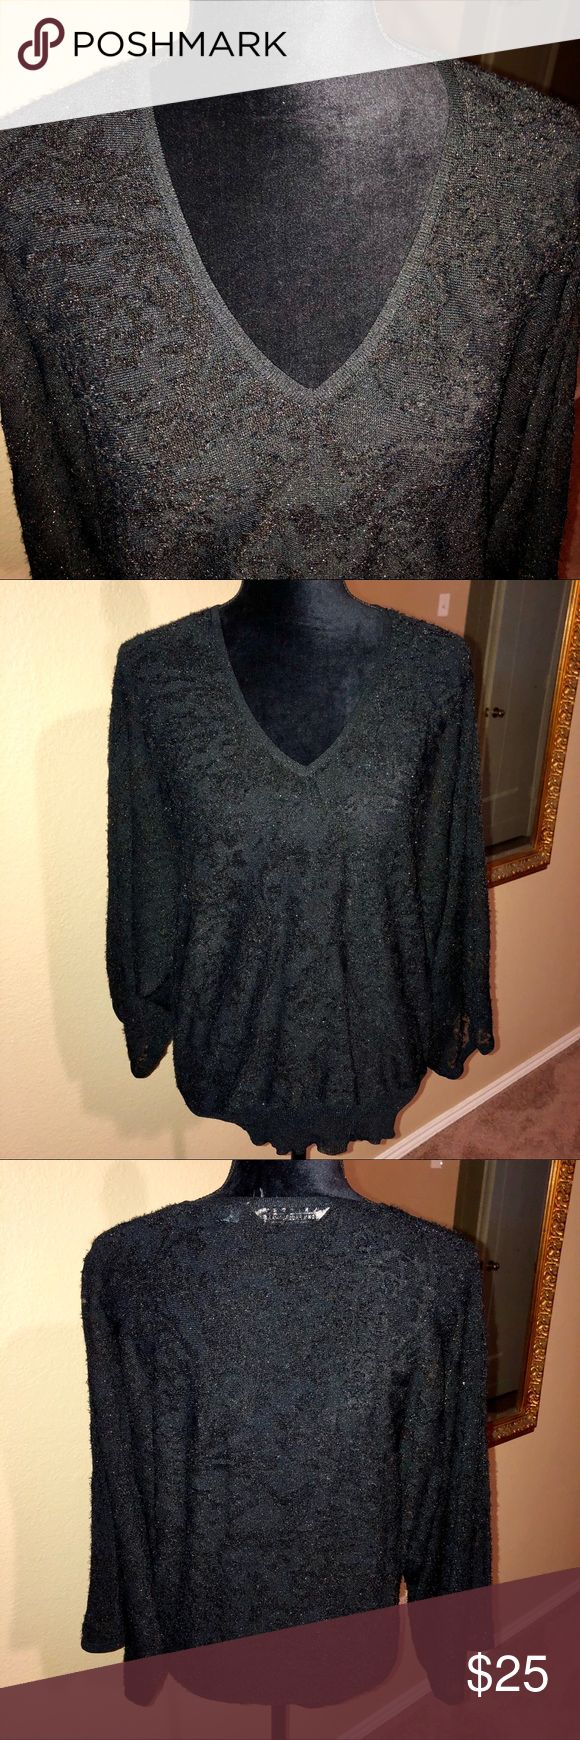 ♠️John Paul Richard Black Velvet Lace Batwing Top Preloved EUC !! Black batwing designed blouse with glittery velvet lace fabric! Nice v-neck makes it perfect for a beautiful necklace. Slightly sheer so would need to wear a cami underneath. Size Medium but due to design this is oversized! No fabric content tag but feels like a cotton/spandex blend! Perfect to wear with jeans, slacks or pencil skirt, any occasion! John Paul Richard Tops Blouses